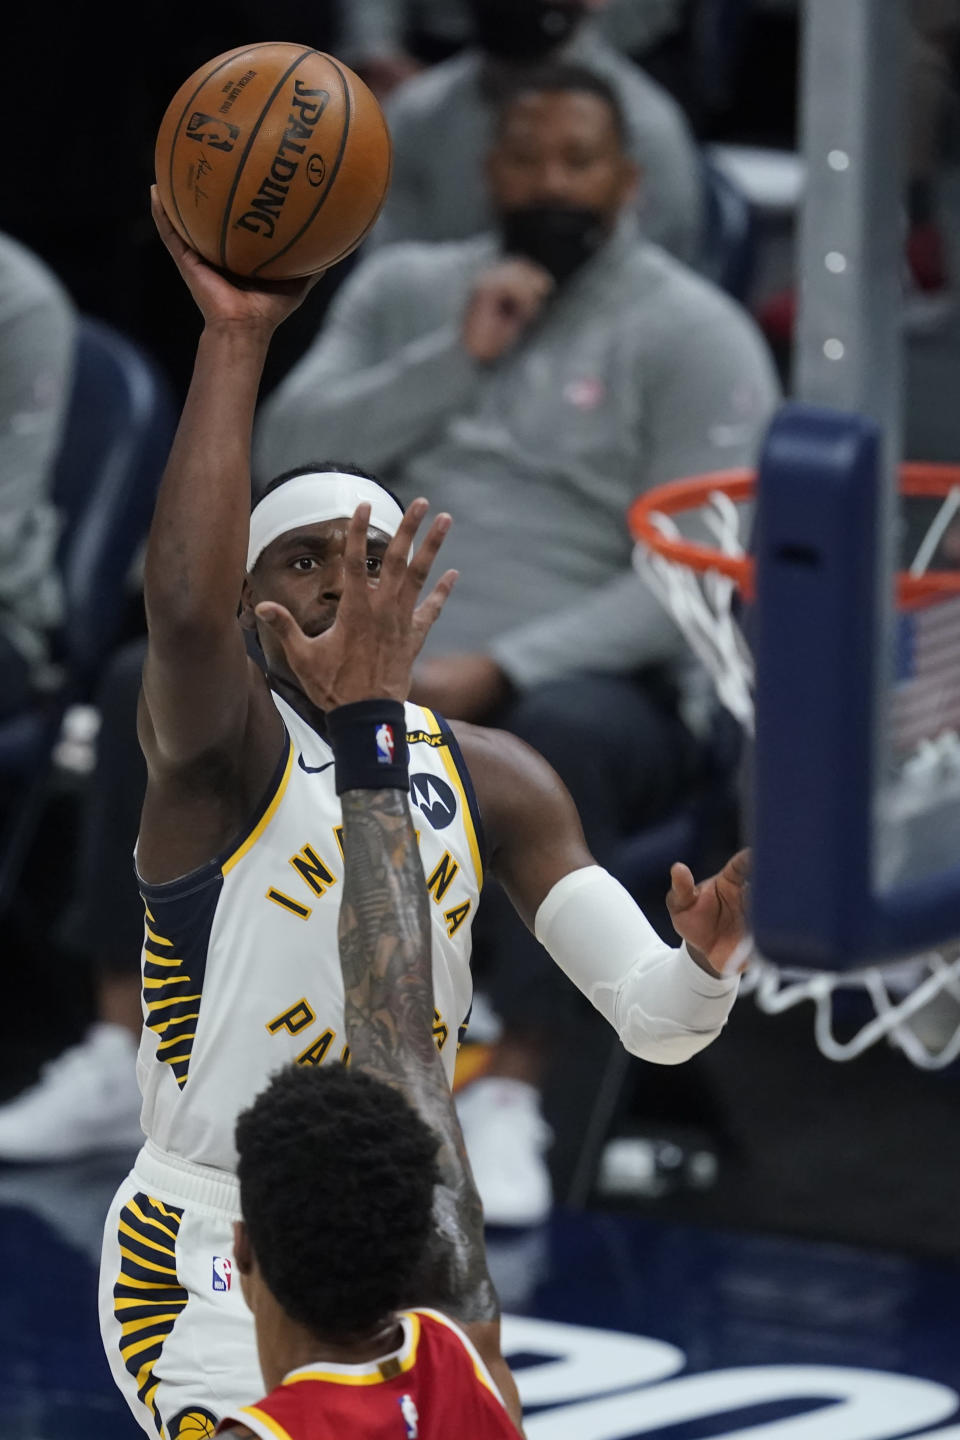 Indiana Pacers' Aaron Holiday shoots during the second half of the team's NBA basketball game against the Atlanta Hawks, Thursday, May 6, 2021, in Indianapolis. (AP Photo/Darron Cummings)